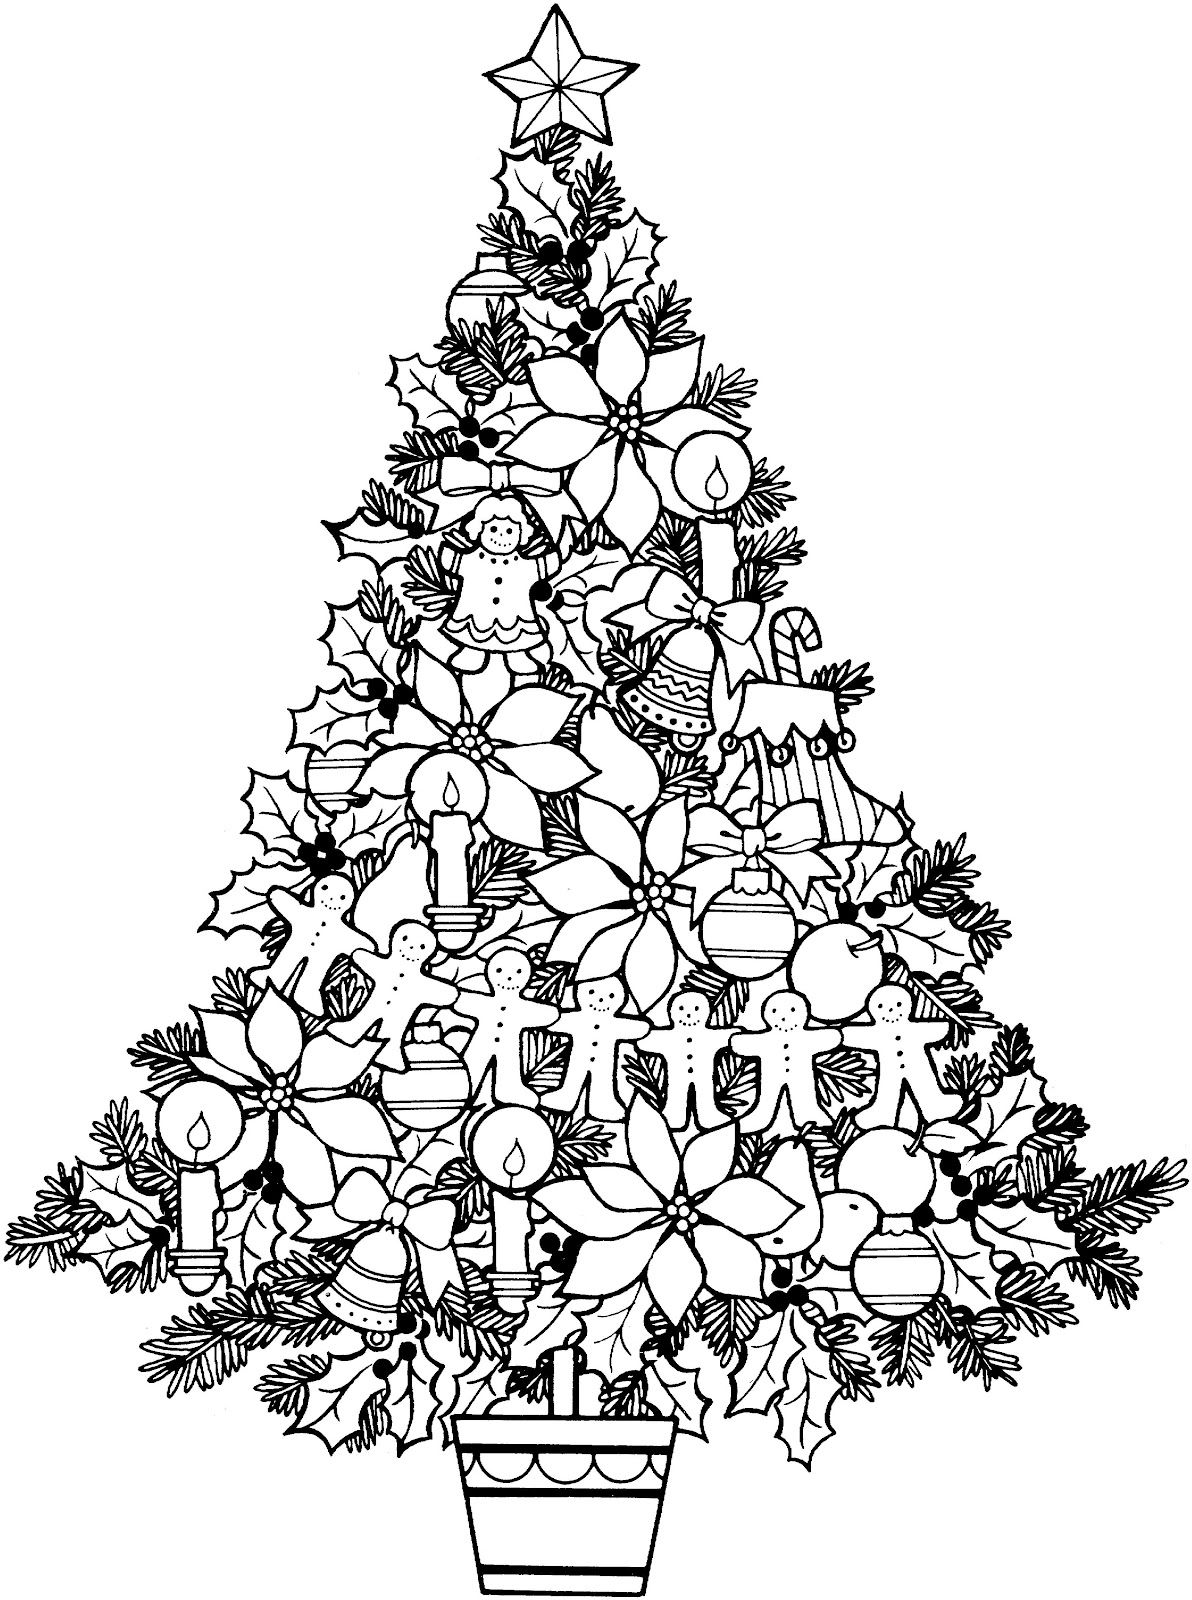 Christmas Tree Colouring Pages For Adults With Icons Black And White Coloring